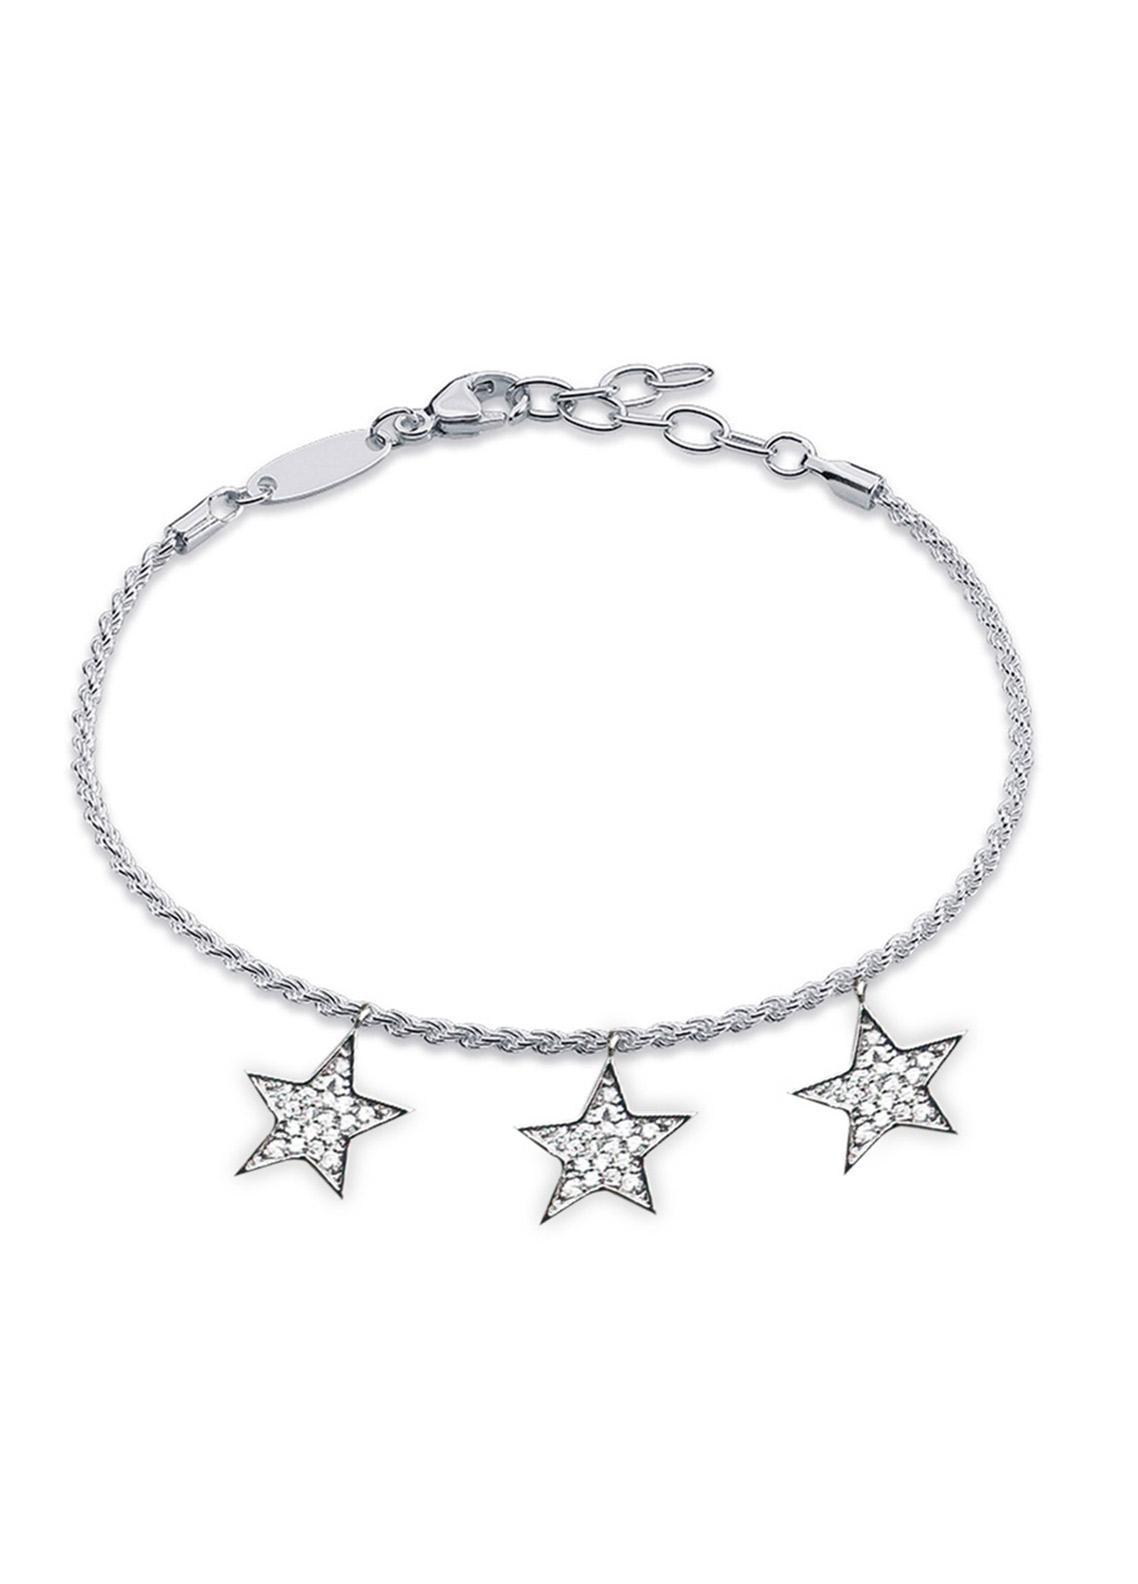 Anna Grace London Silver Crystal Stars Bracelet AGB0067 - Ladies Jewellery